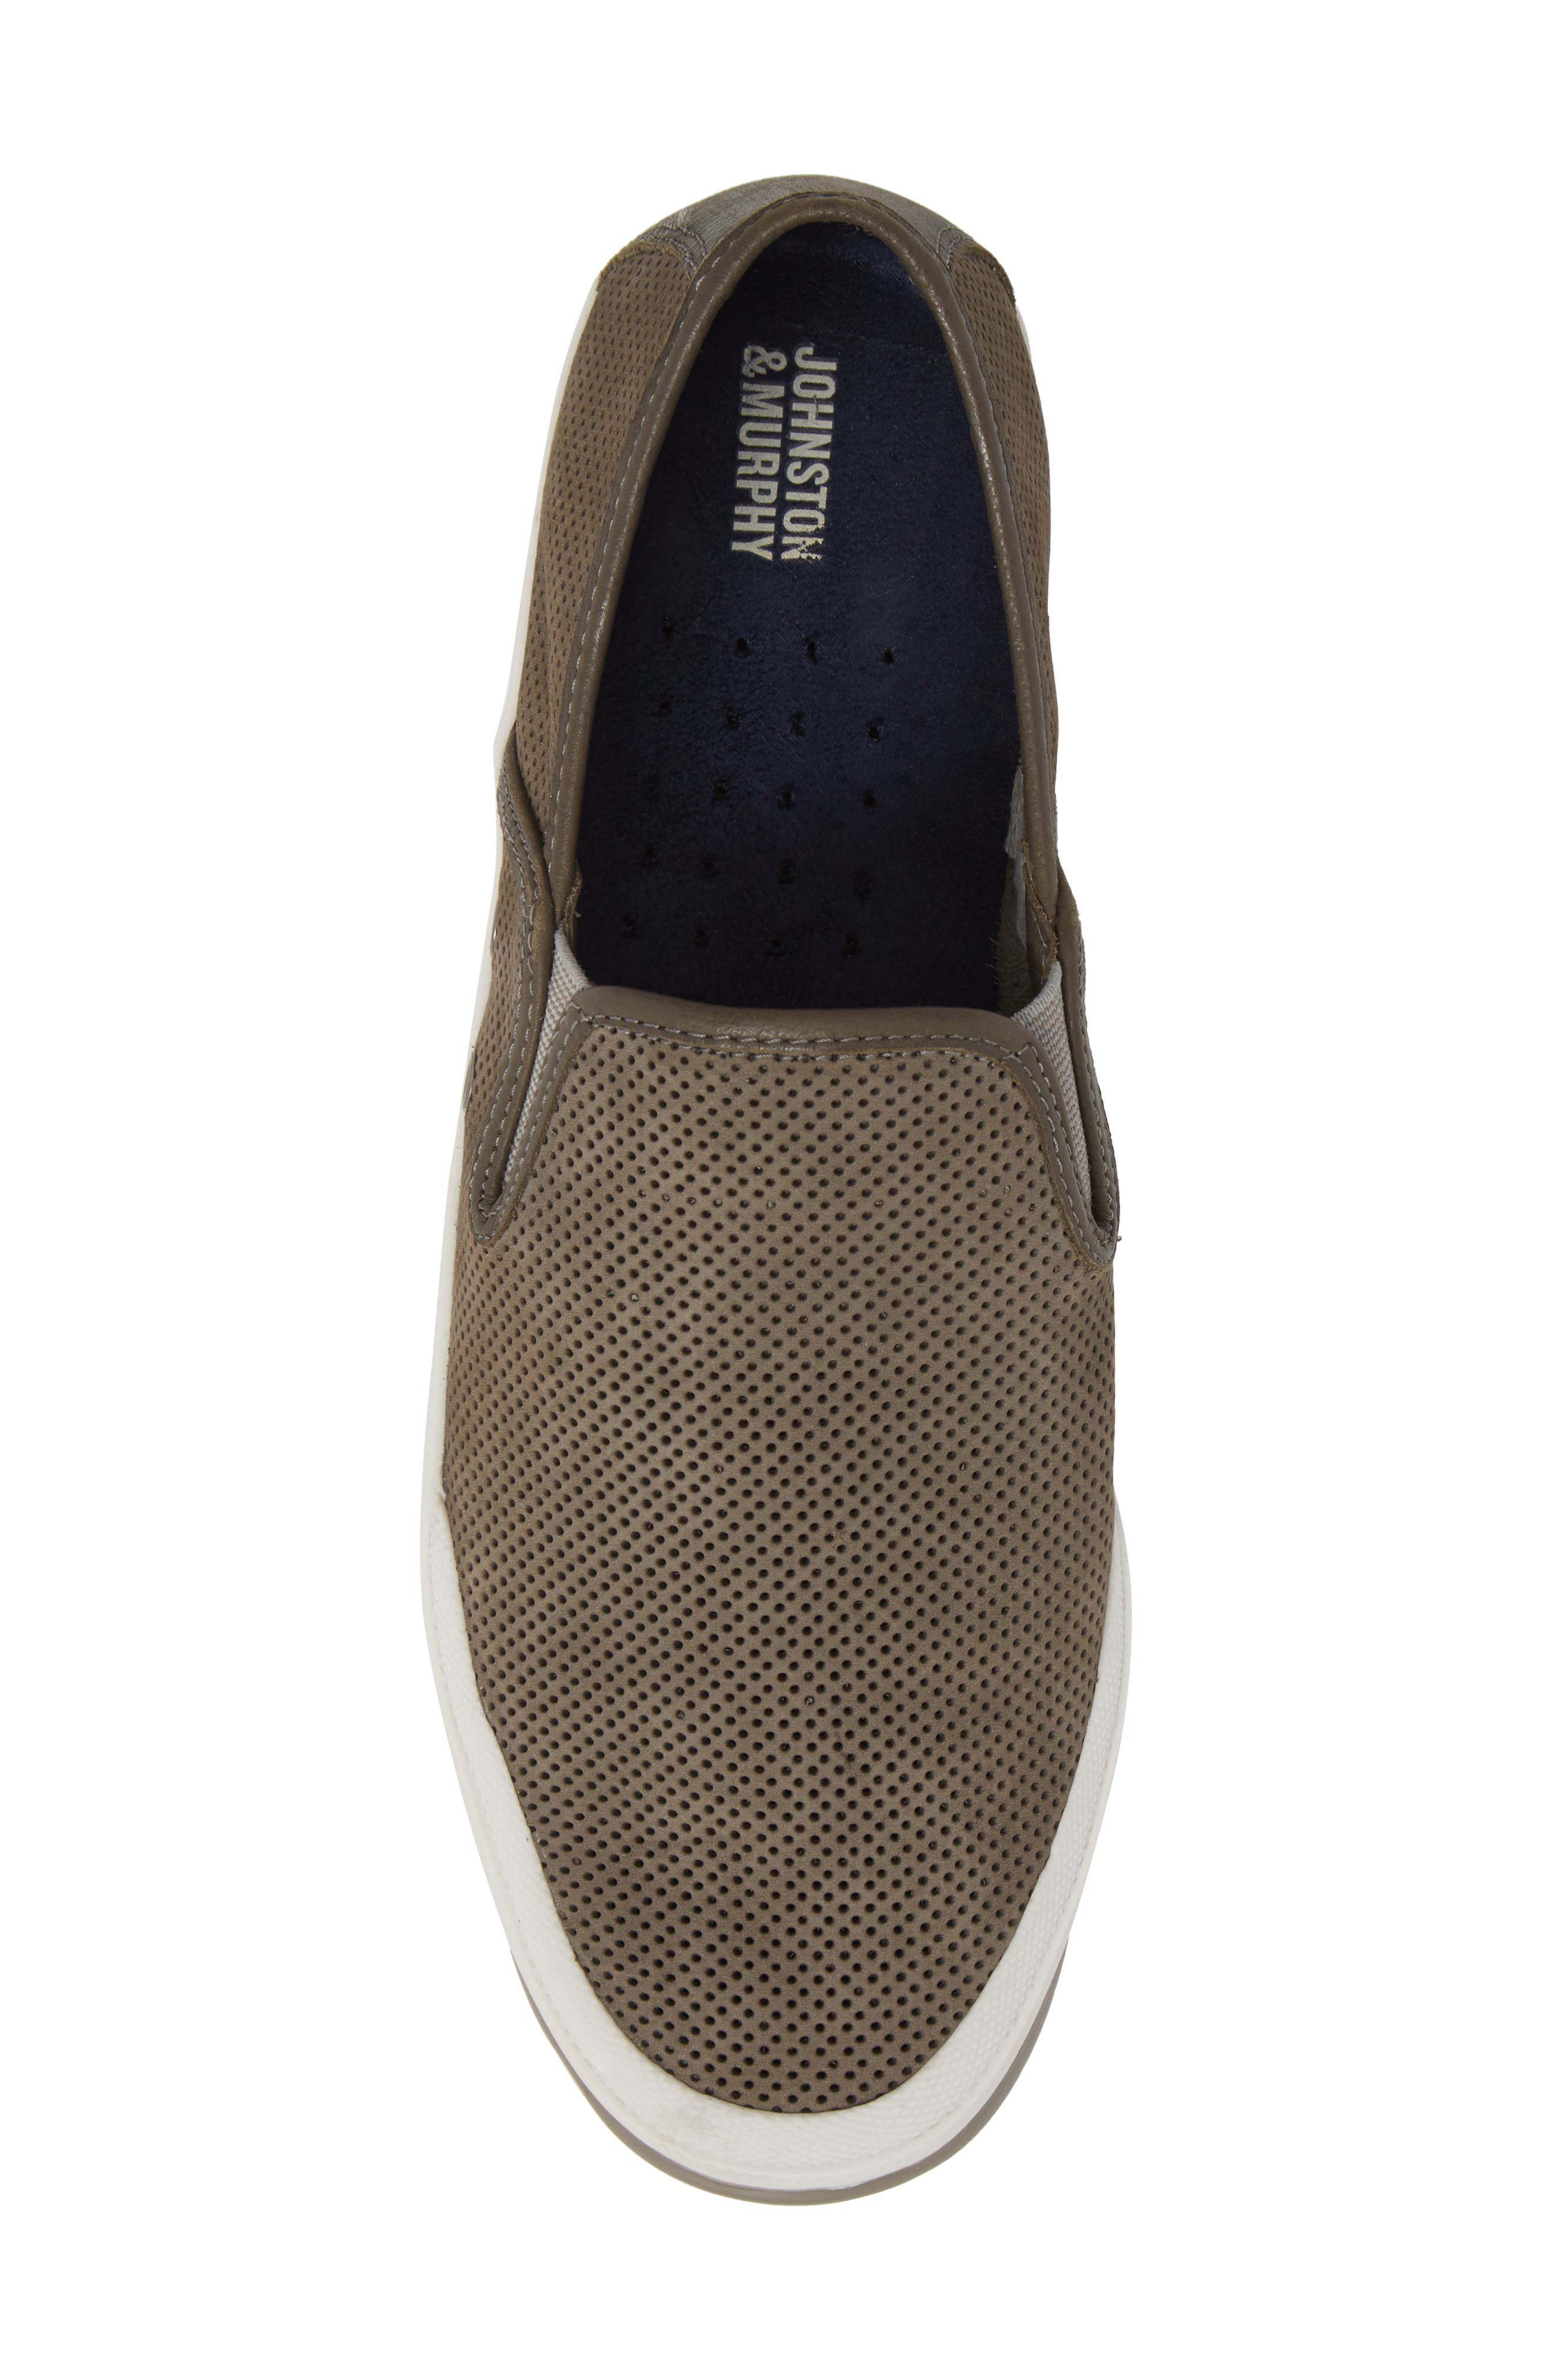 'Mullen' Slip-On,                             Alternate thumbnail 5, color,                             Grey Perfed Nubuck